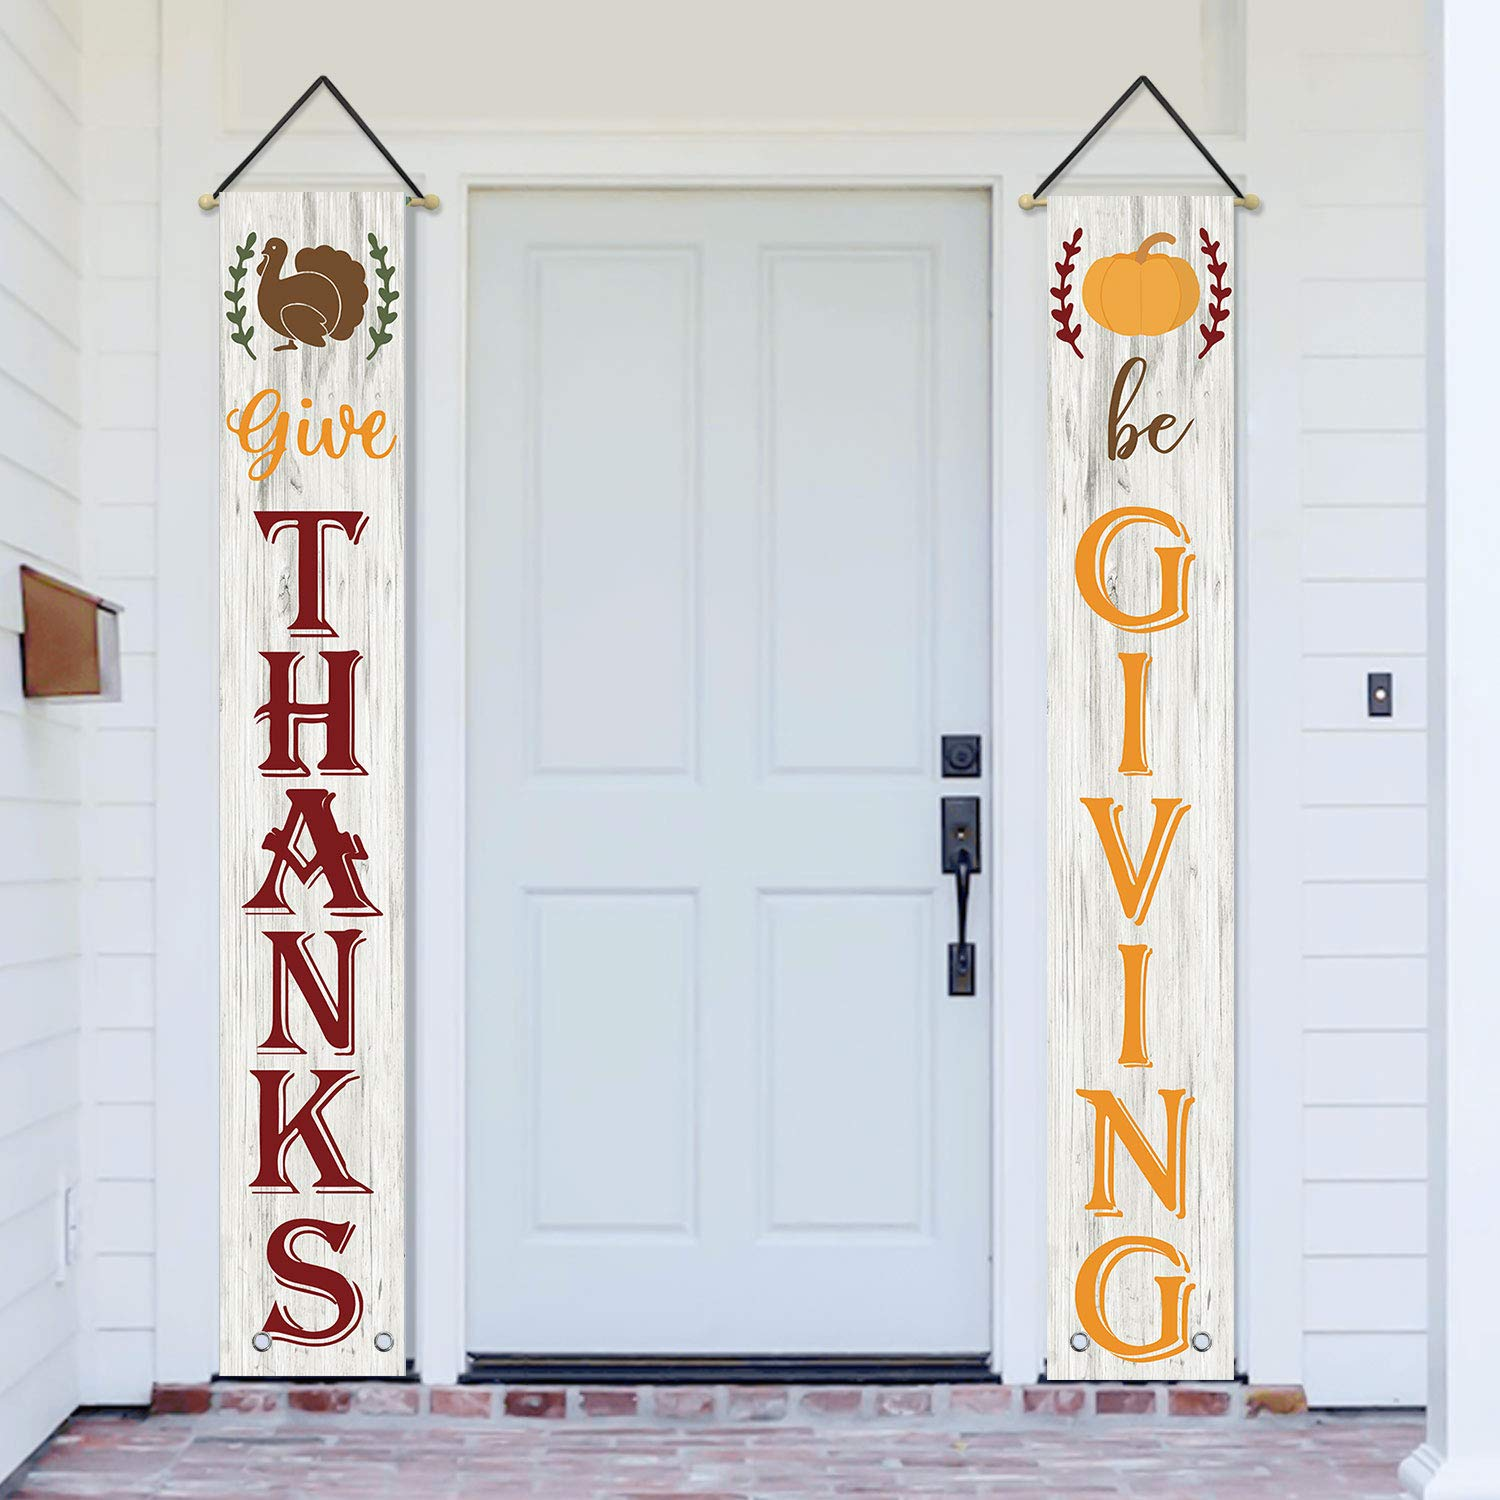 fall harvest decorations outdoors yard signs patio  lawn   garden fall decorations outdoor indoor  fall decorations outdoor indoor